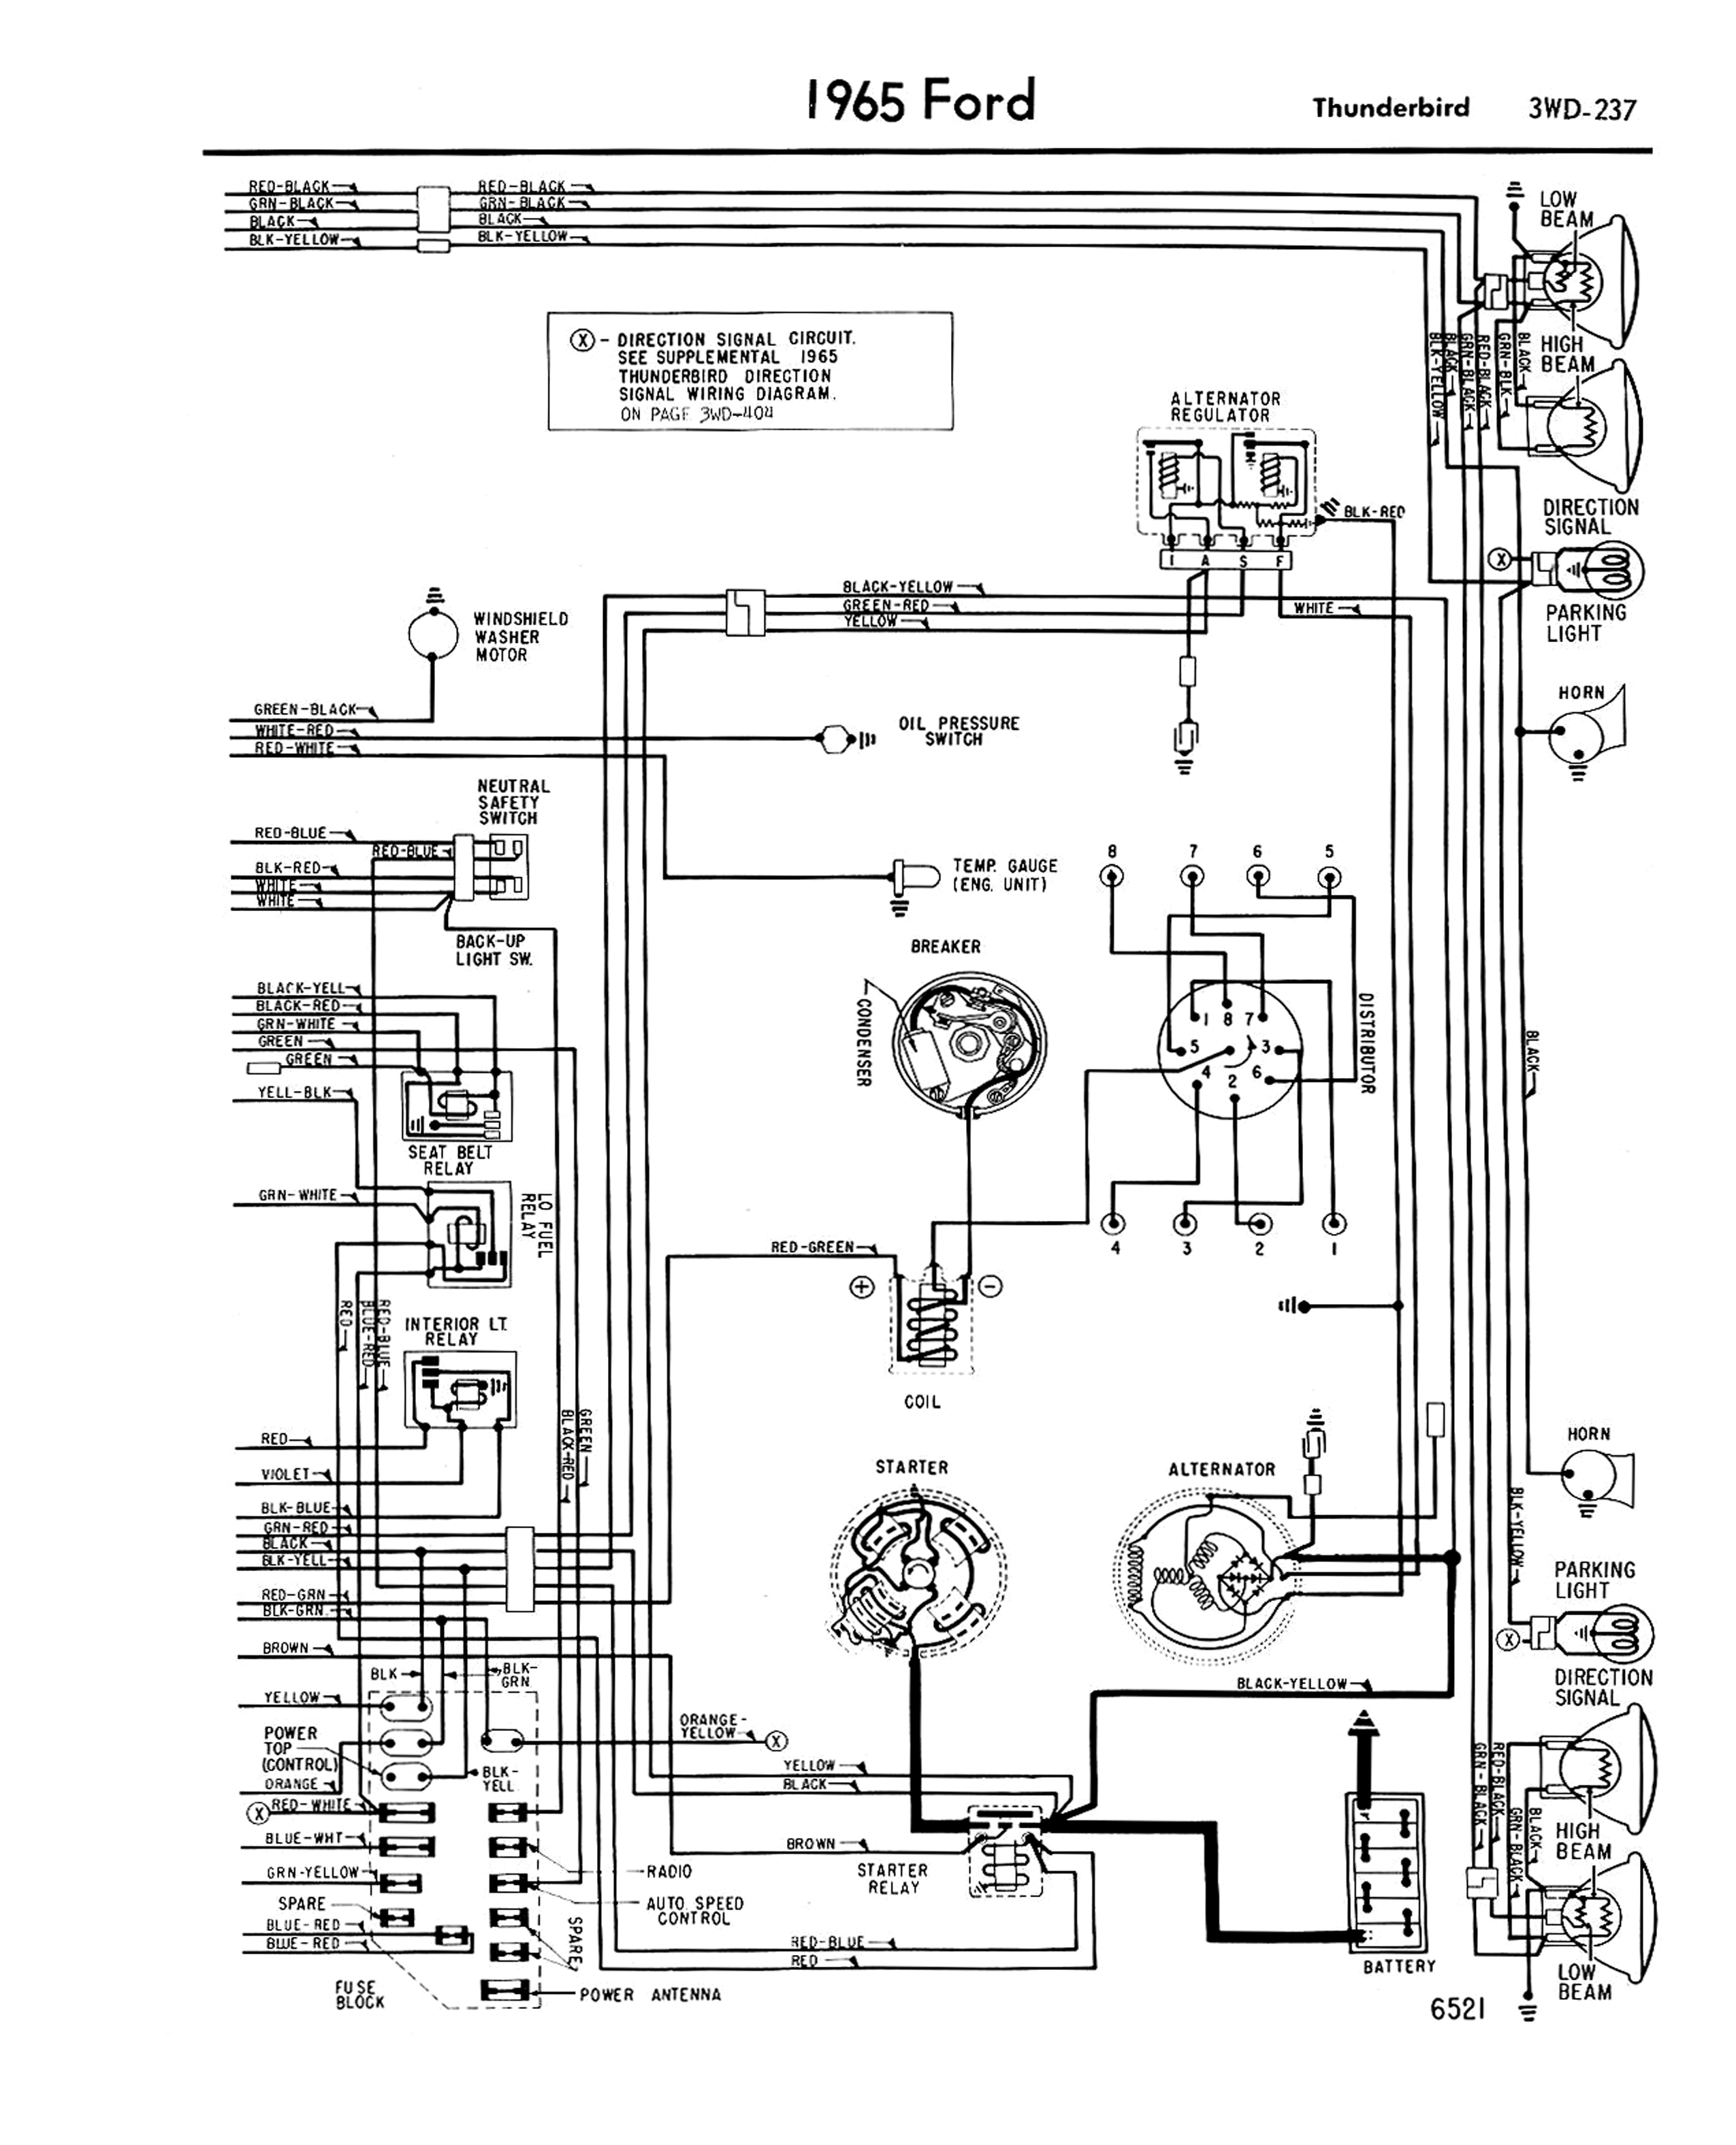 1970 ford f100 turn signal wiring diagram